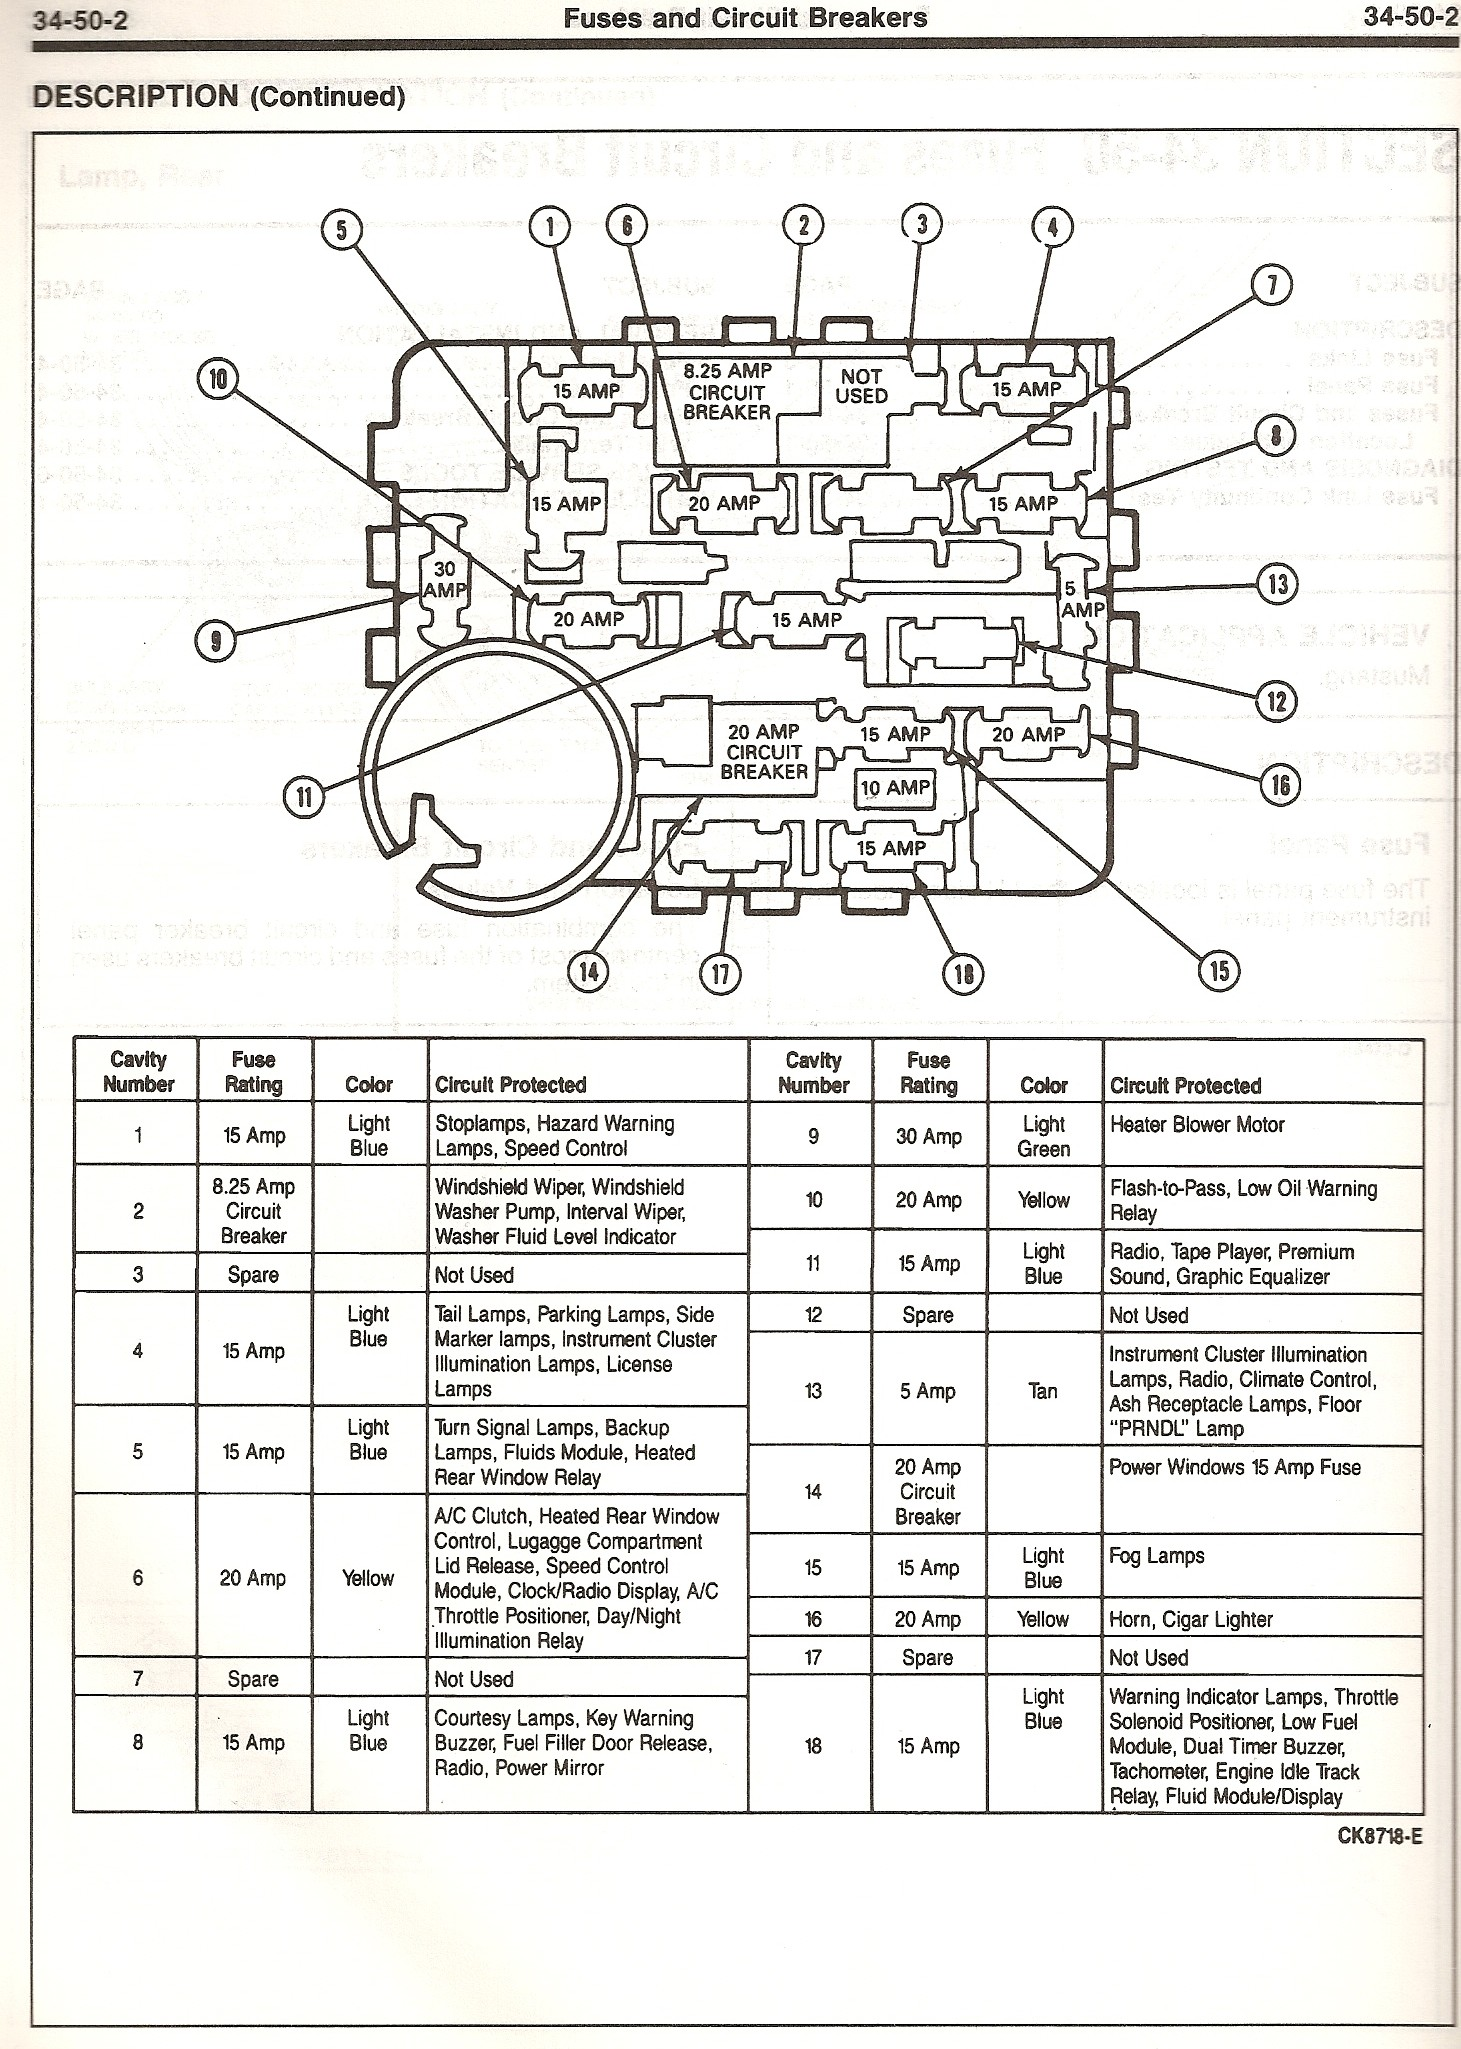 ford mustang fuse box diagram pLoYCHY 1986 ford mustang fuse box diagram image details 1968 mustang fuse box diagram at gsmx.co